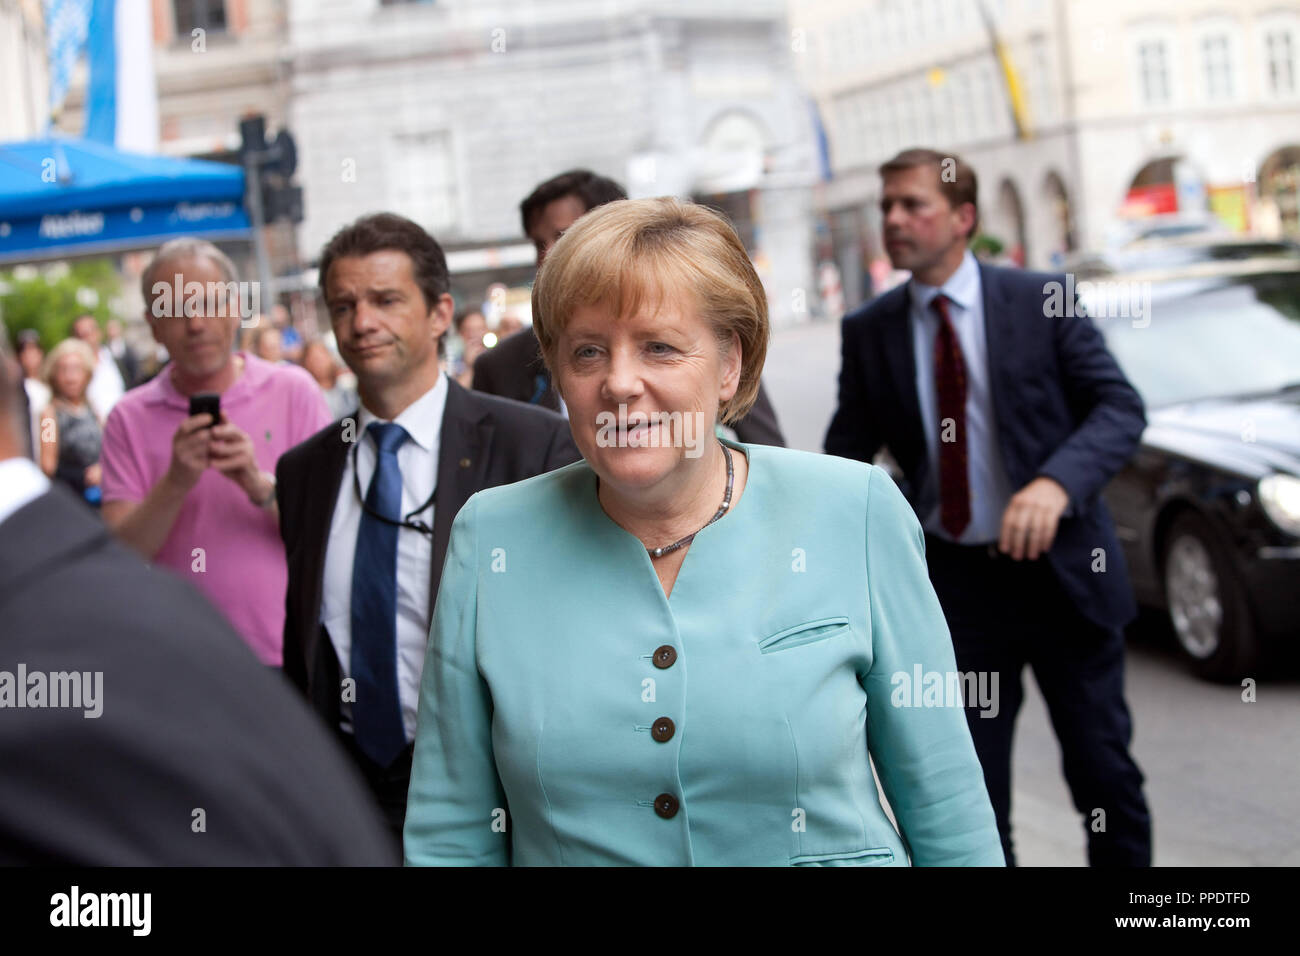 Angela Merkel on arrival at the Hotel Bayerischer Hof. - Stock Image